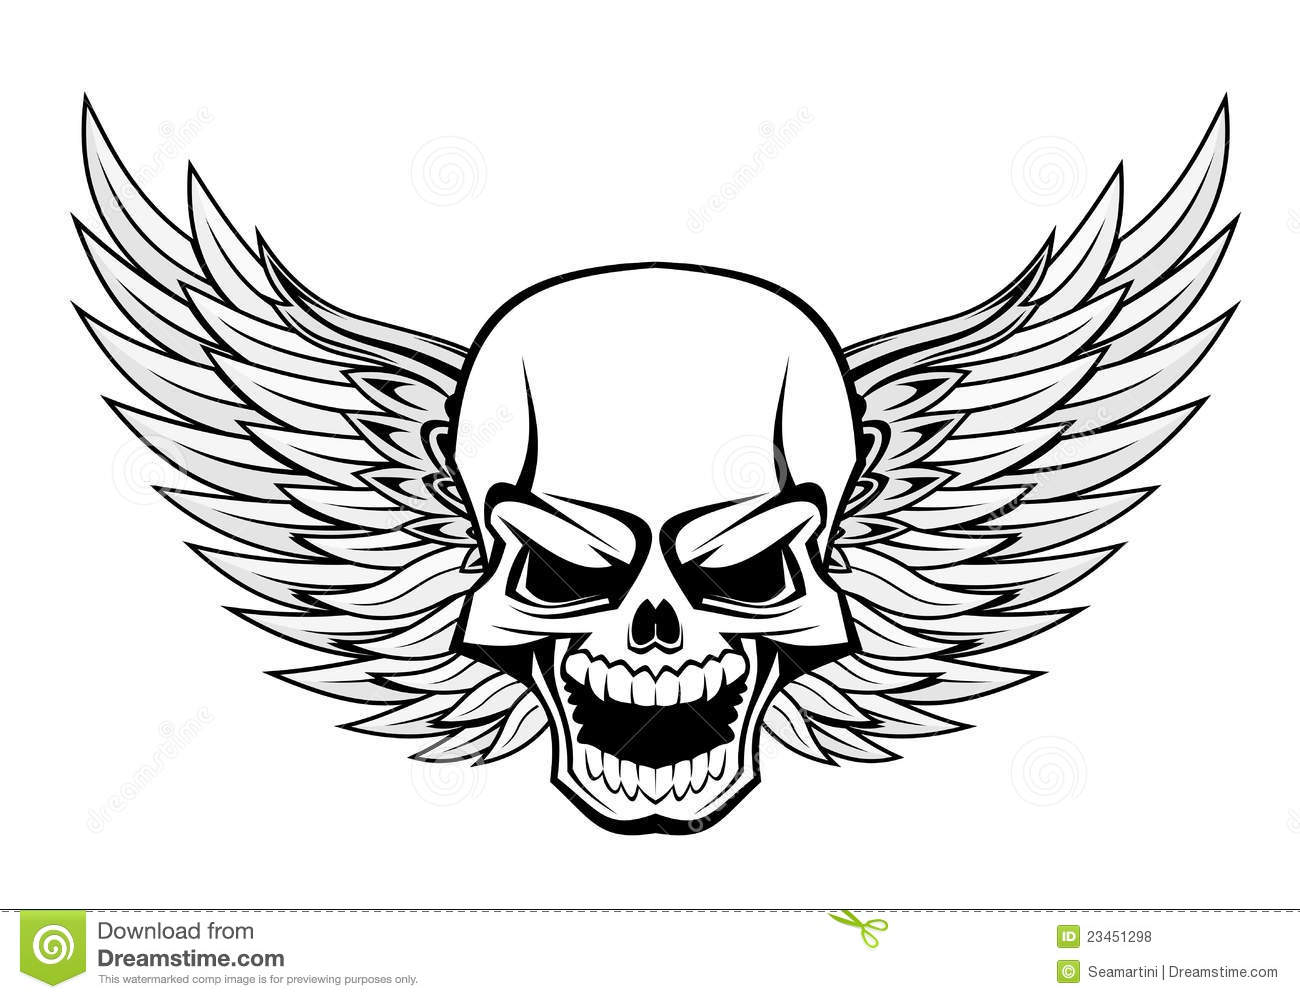 Royalty Free Stock Photos Skull Wings Image23451298 on harley davidson army motorcycle